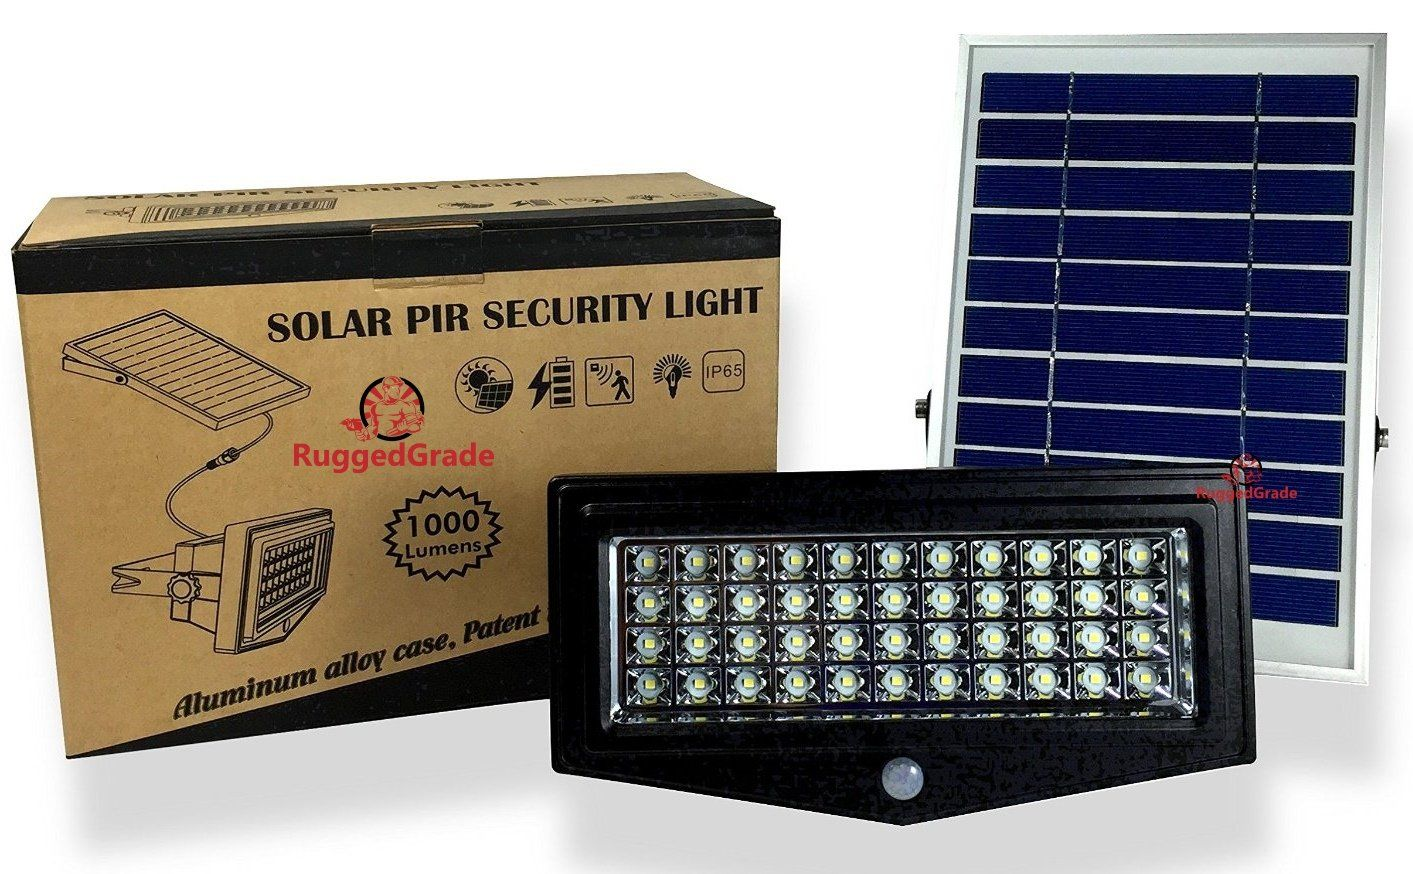 High Power 1000 Lumen Solar Motion Led Flood Light A 10 Watts Of High Power Light A Commercial Grade Flood Led Flood Lights Solar Flood Lights Flood Lights